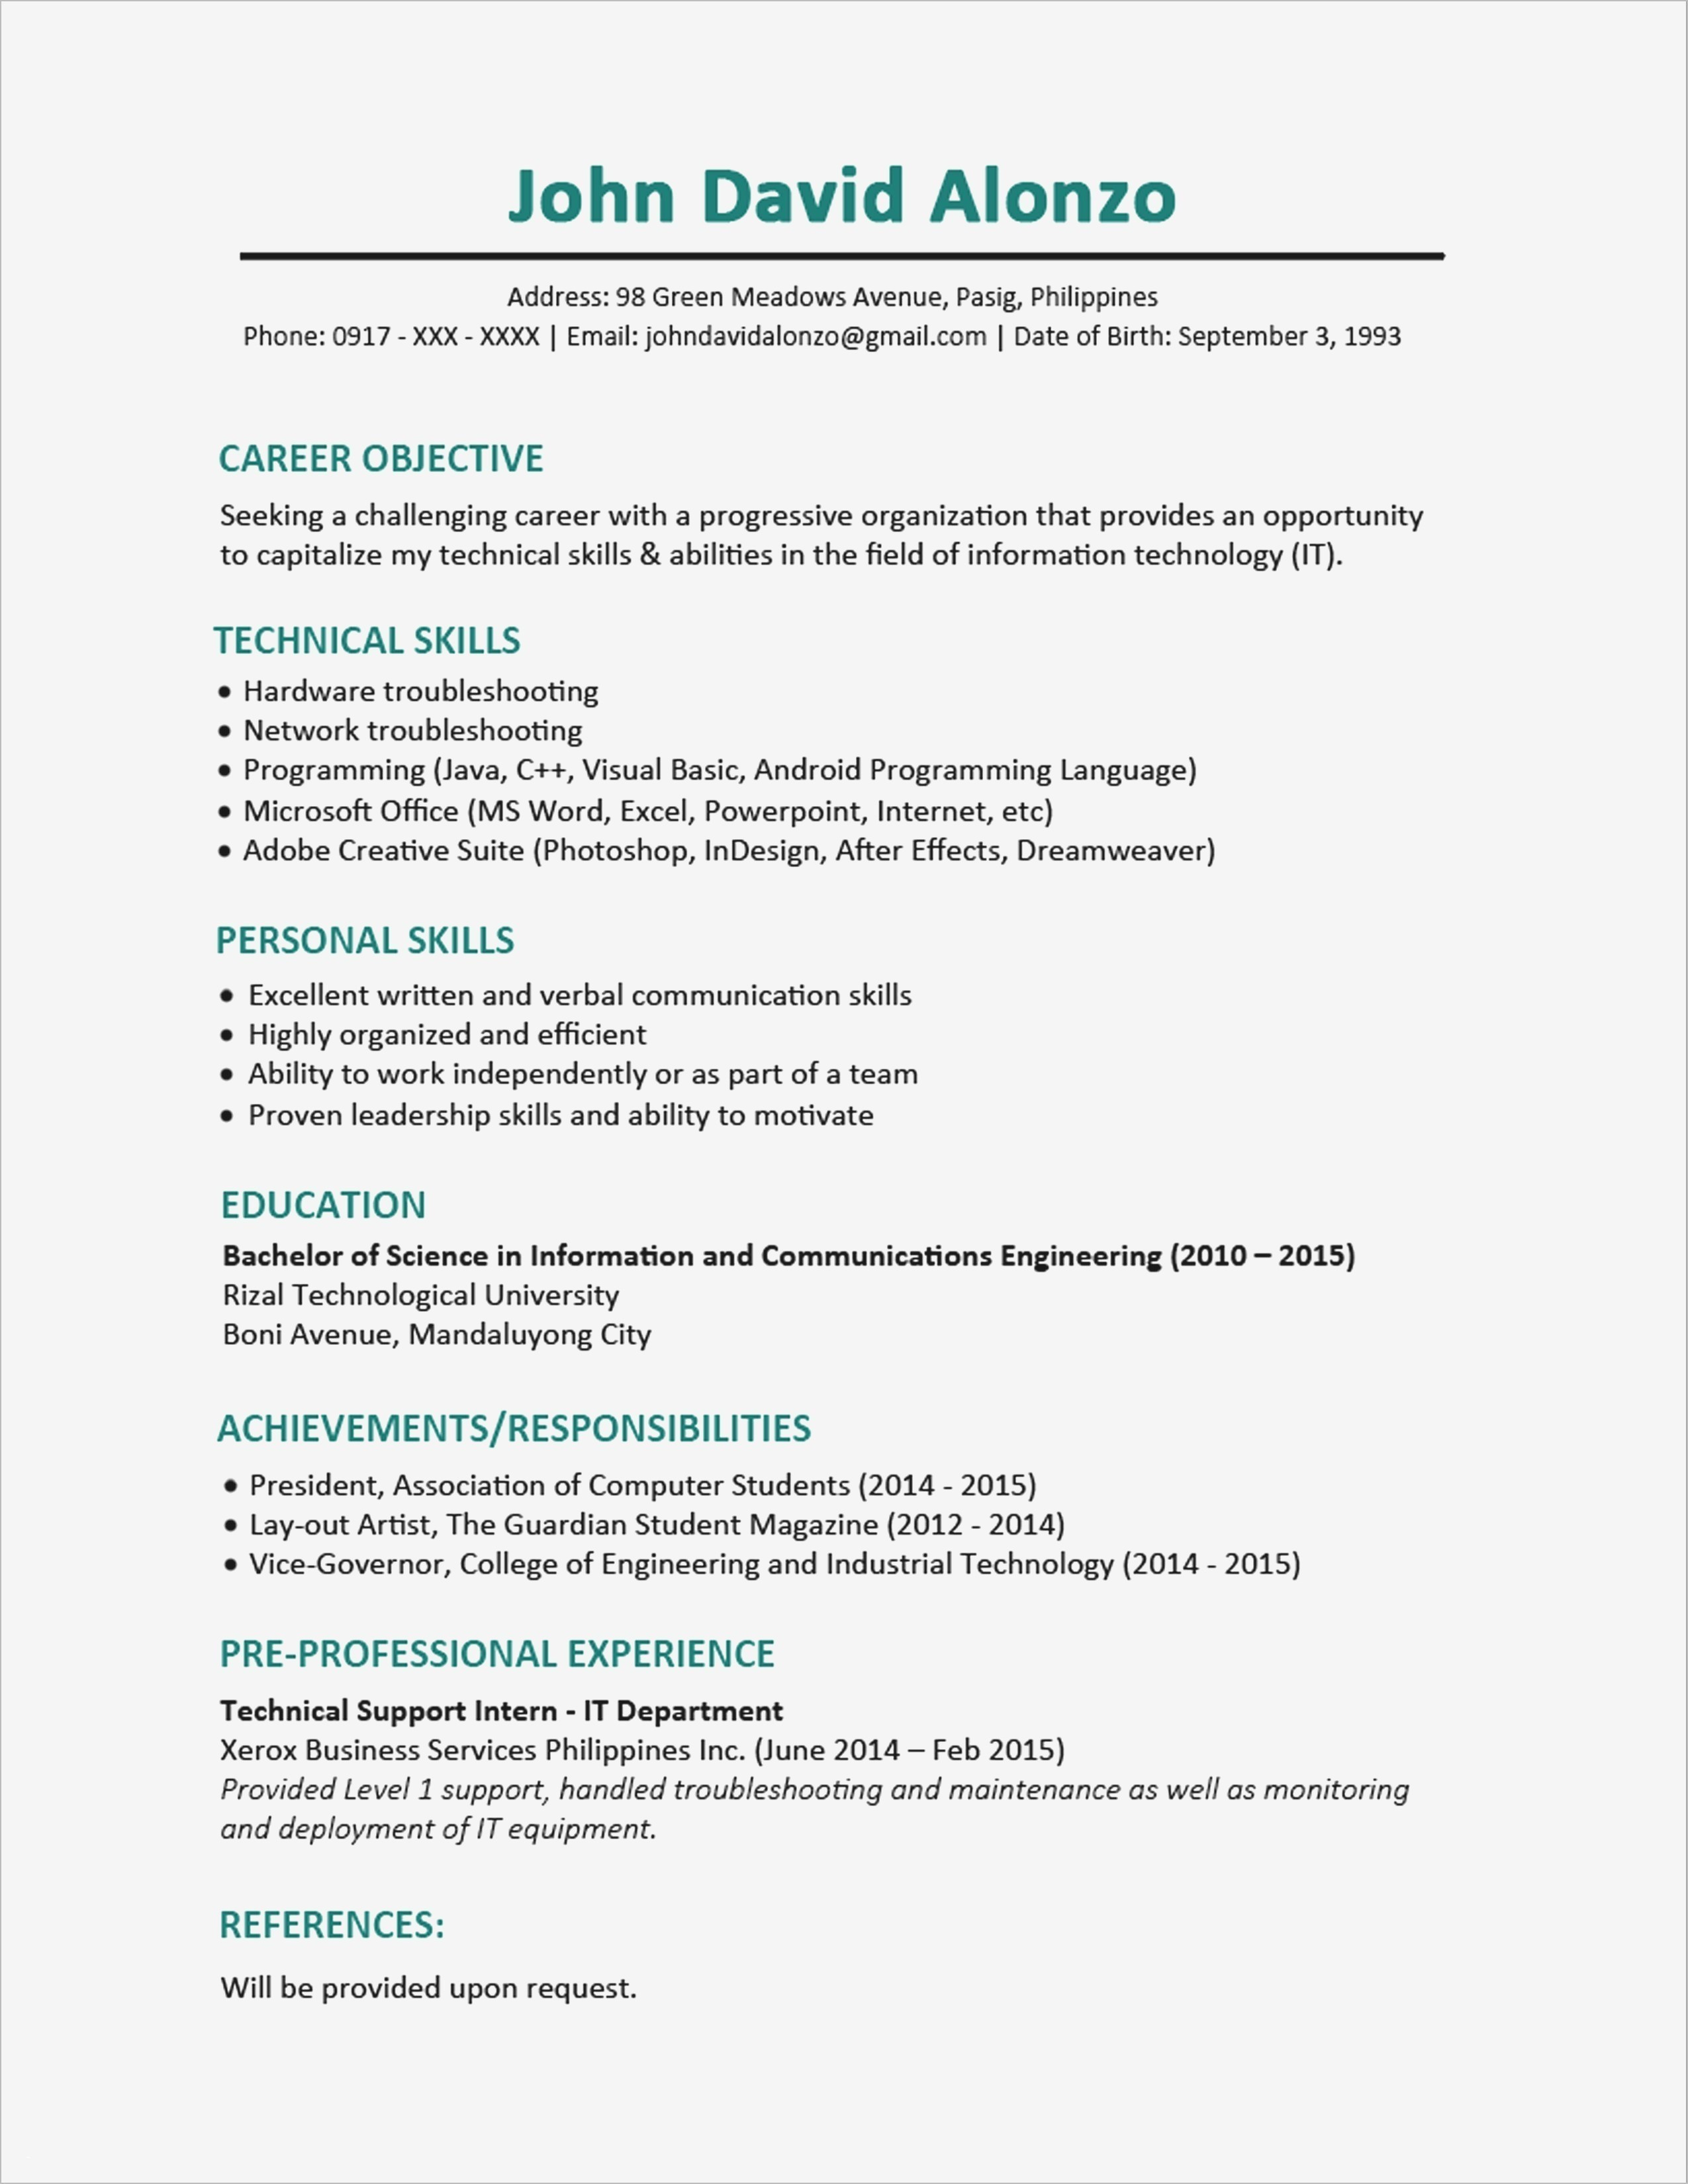 Freelance Writer Resume Template - Printable Resume Examples Awesome Words to Use In A Resume New